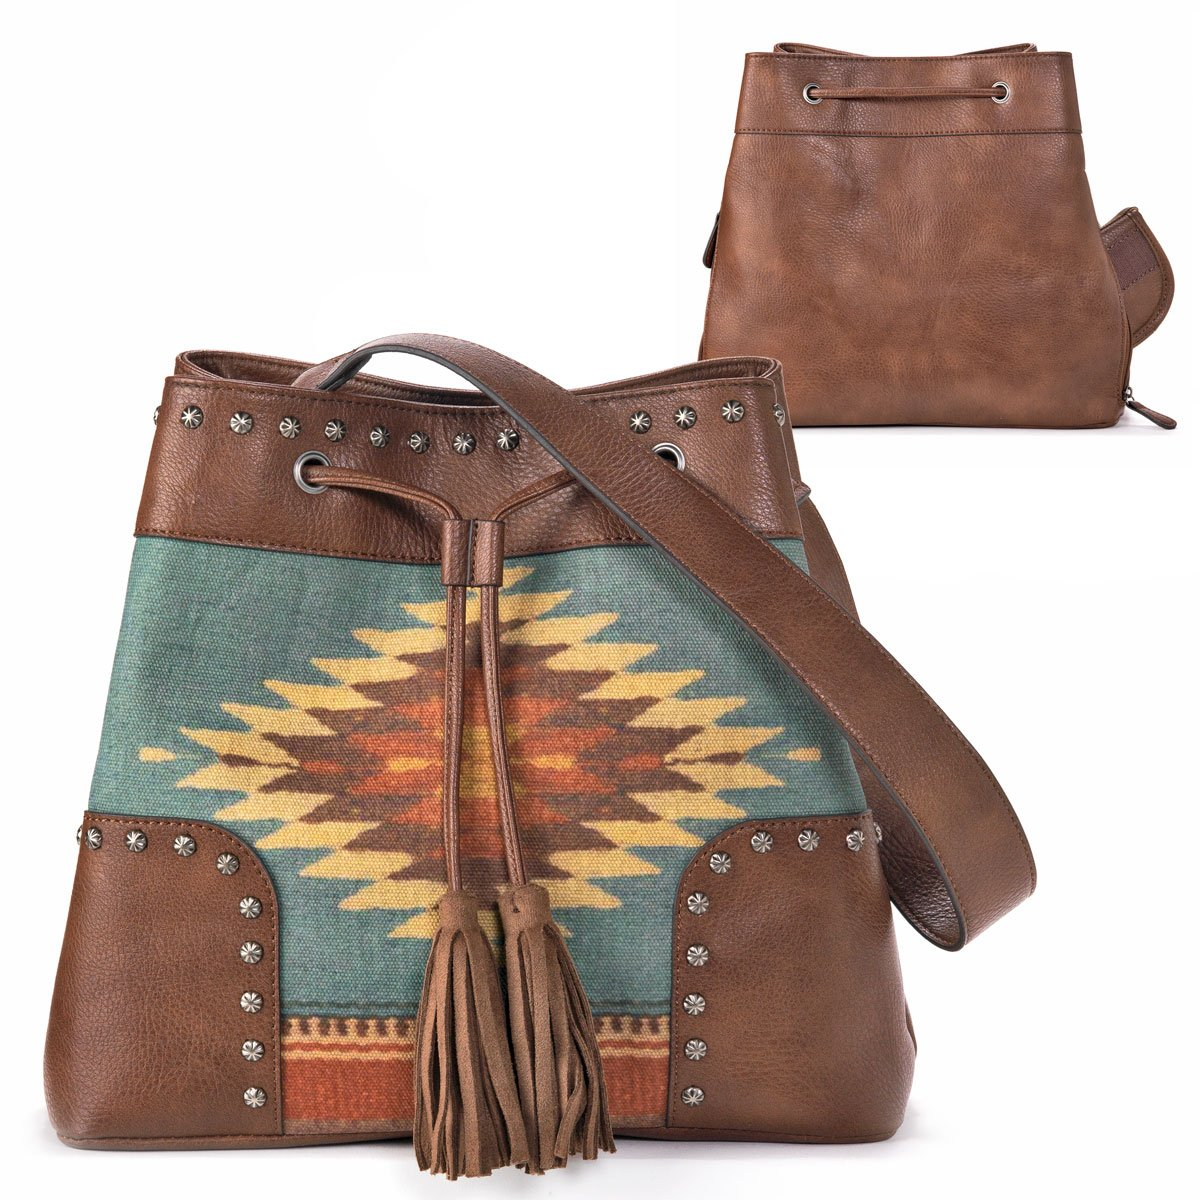 ZAPOTEC CONCEALED CARRY BUCKET PURSE